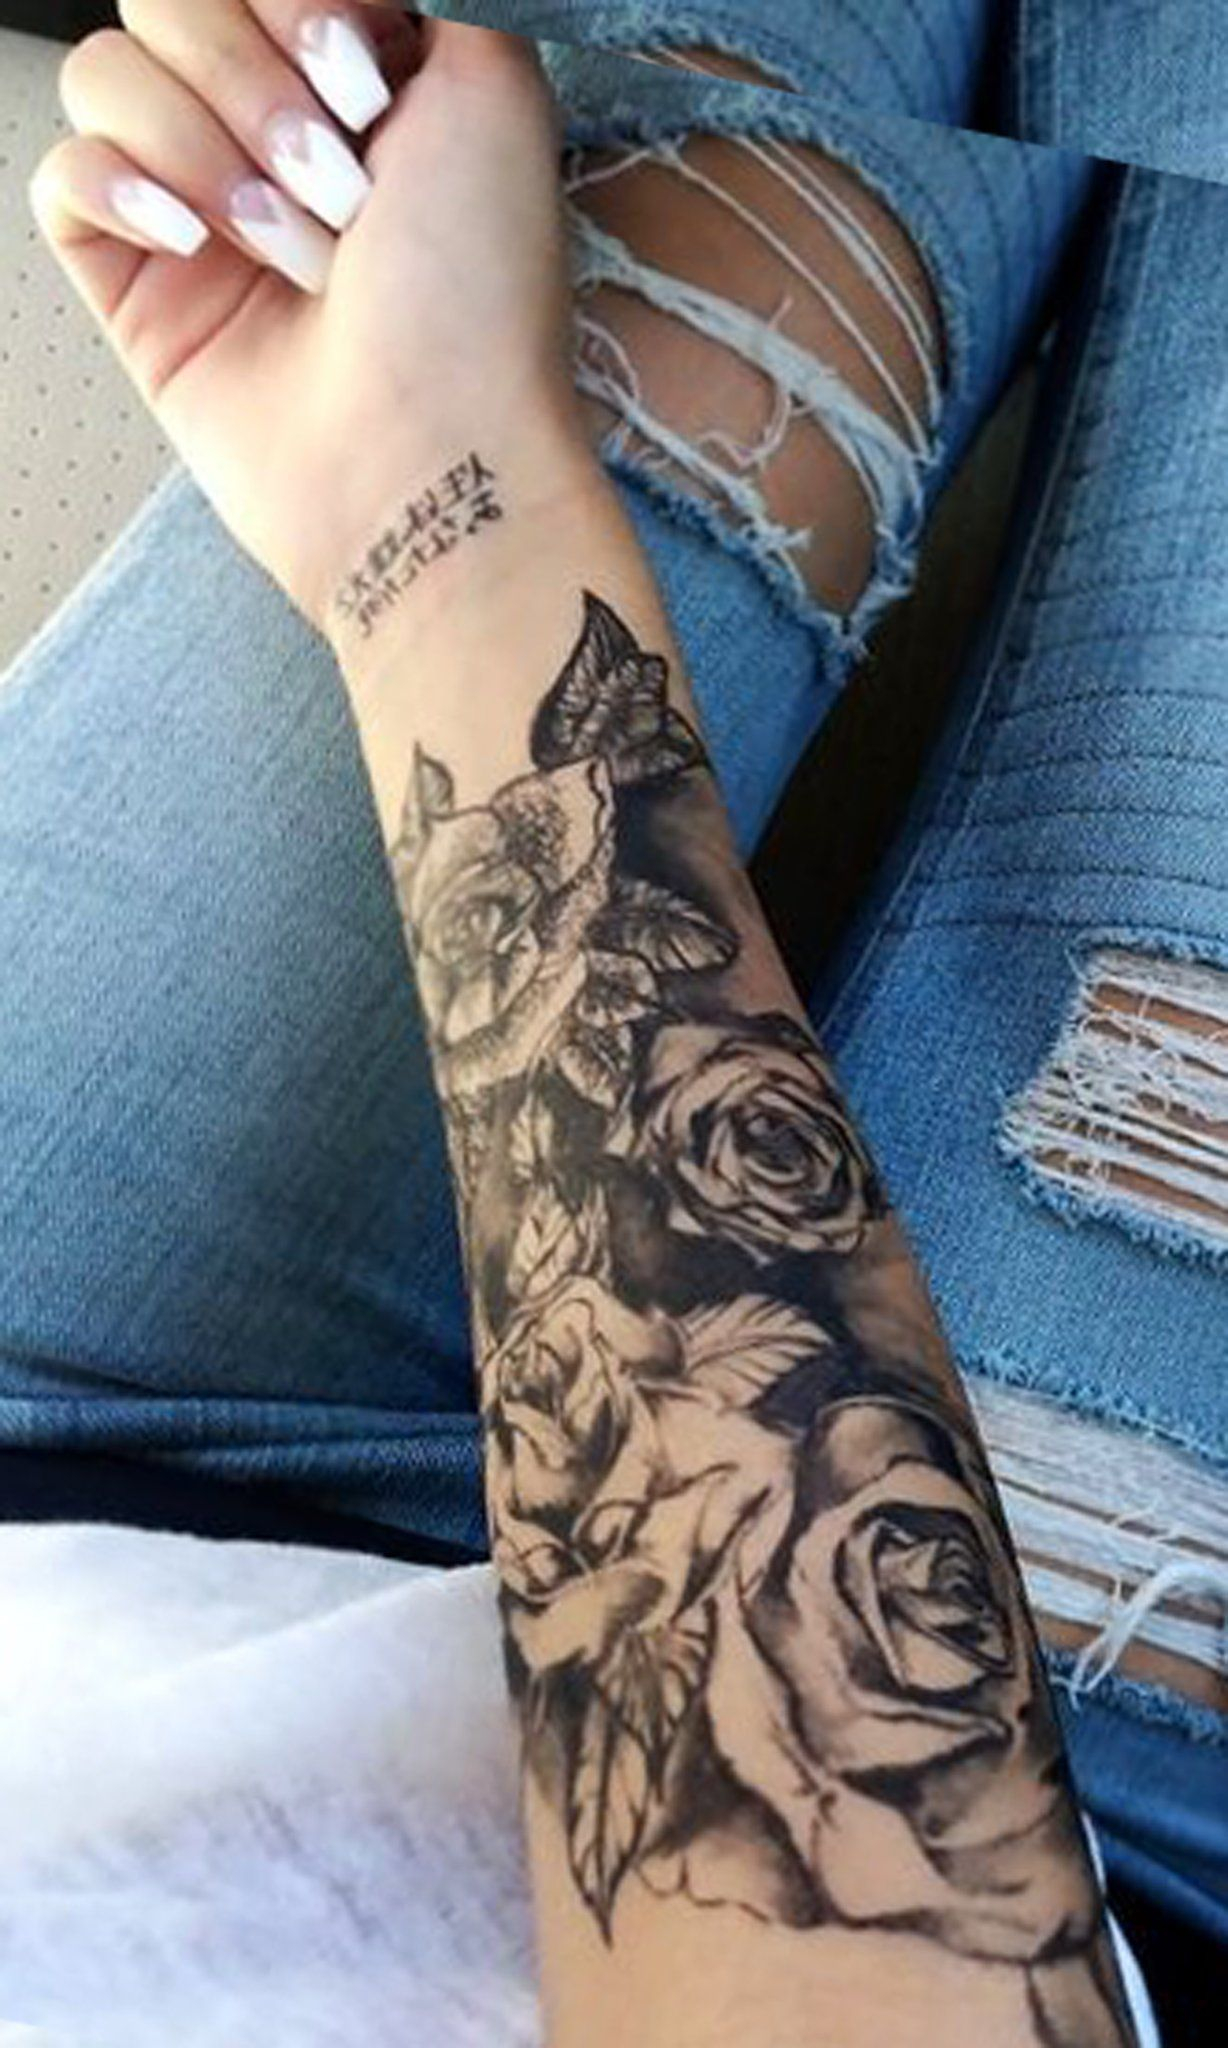 Black Rose Forearm Tattoo Ideas For Women Realistic Floral Flower with size 1228 X 2048